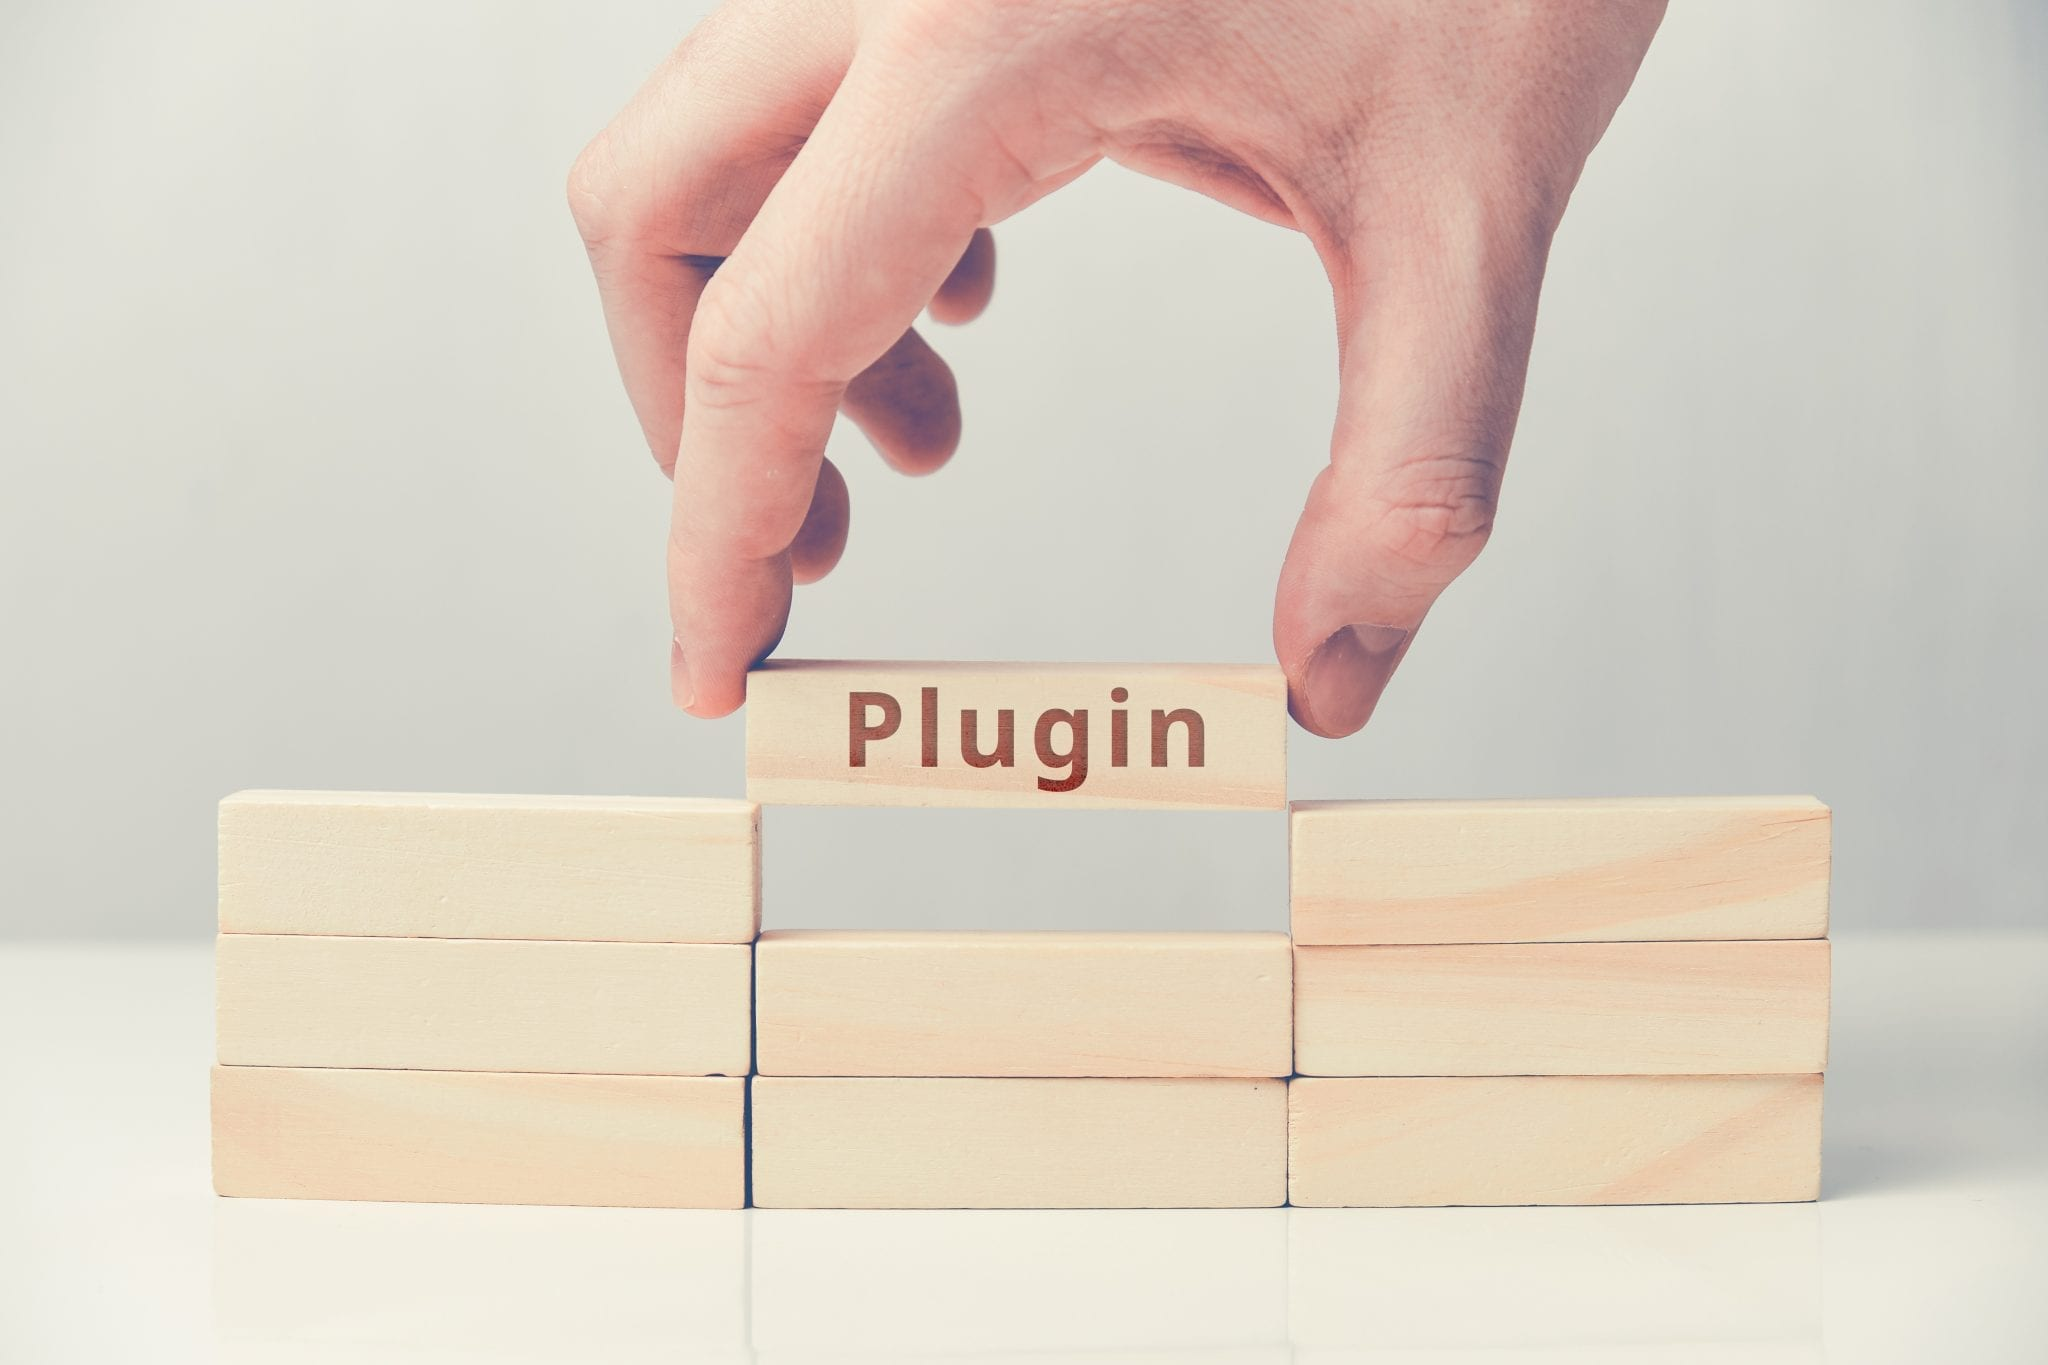 Must Have WordPress Plugins for Small Business Websites